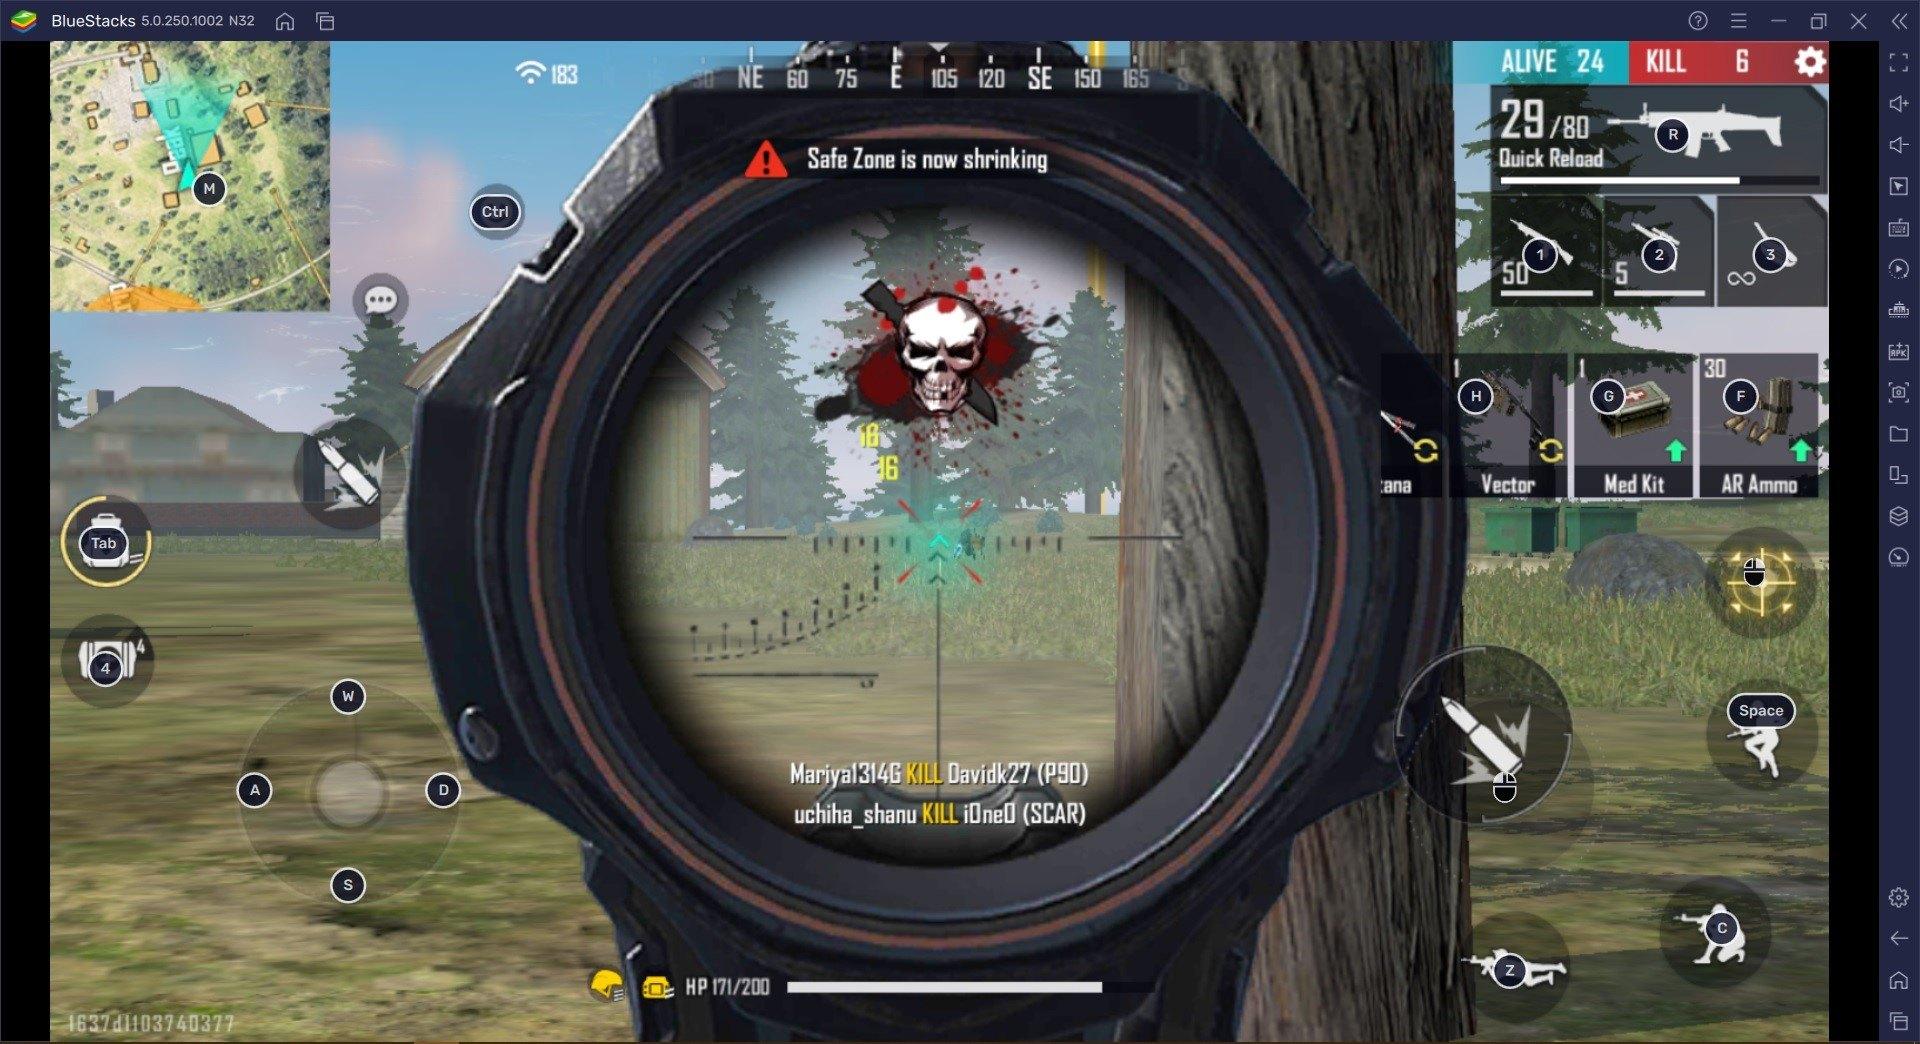 Free Fire Guide for Players Who Want to Improve